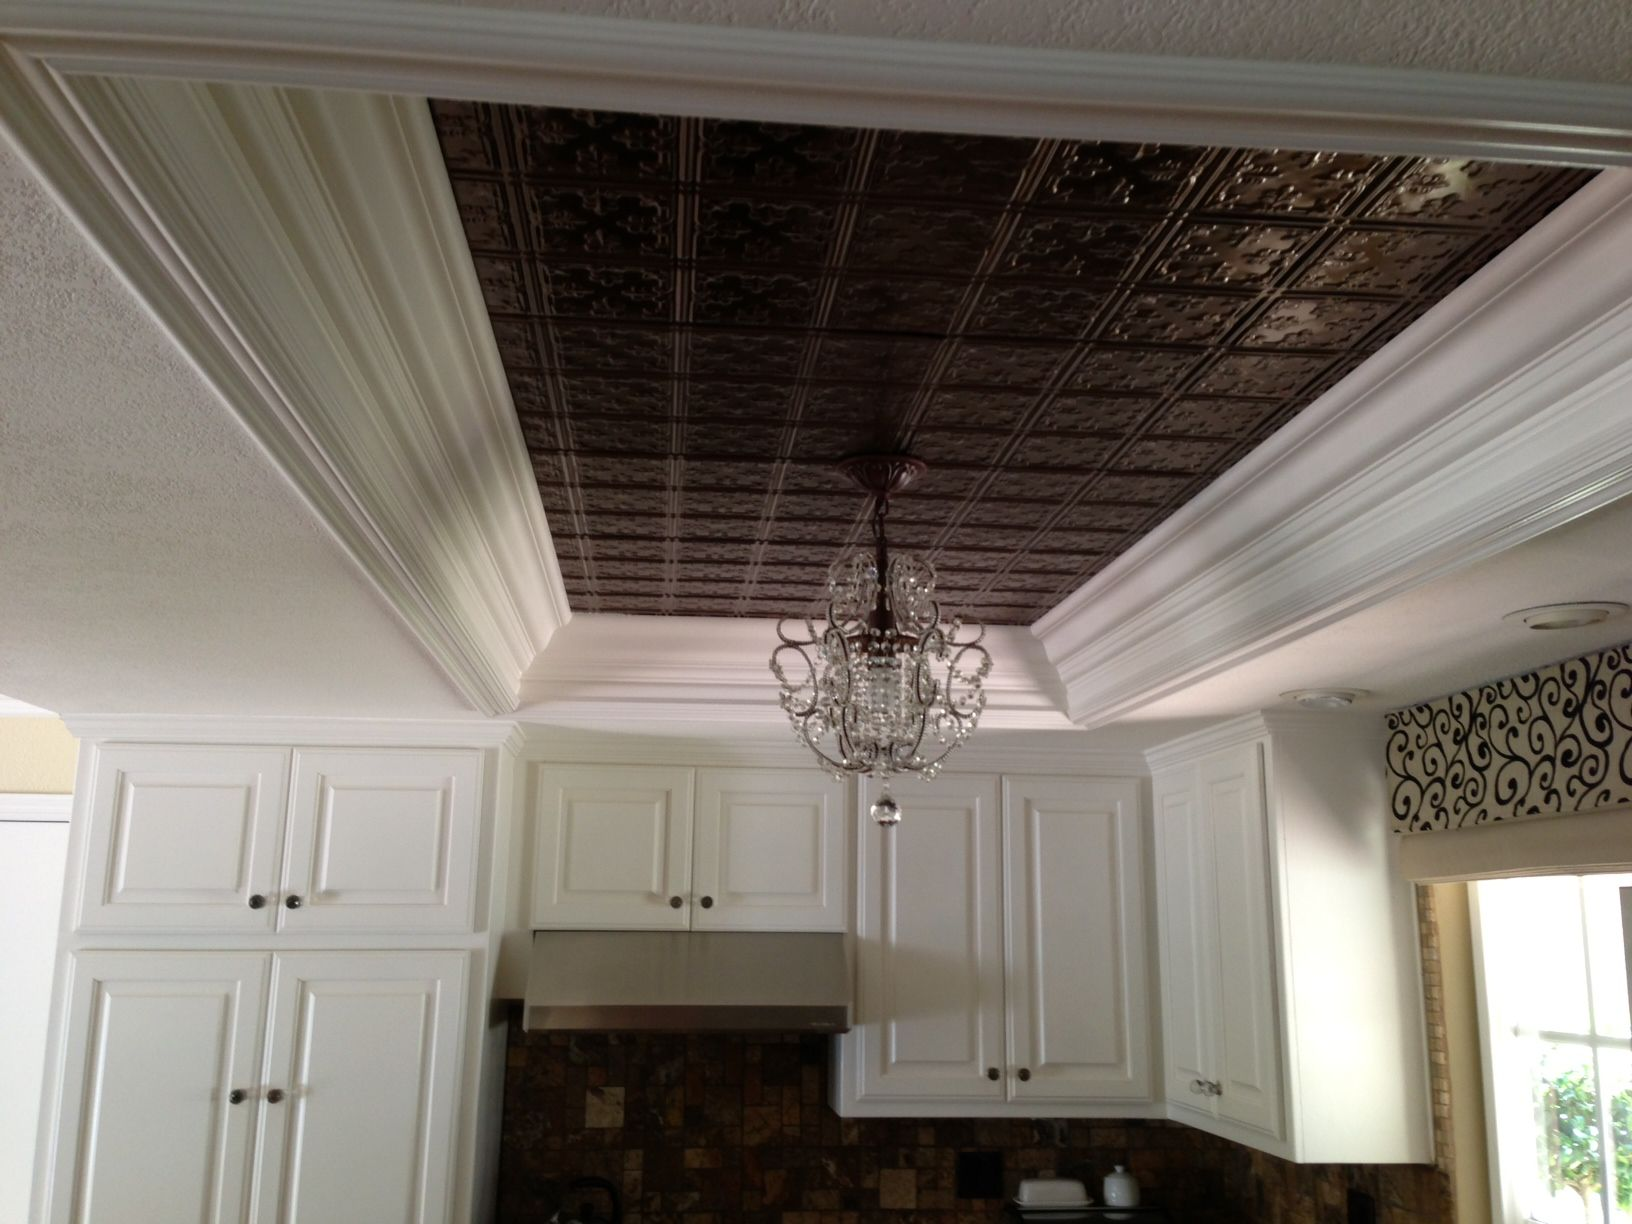 Kitchen ceiling tiles and hanging light replace dated fluorescent kitchen ceiling tiles and hanging light replace dated fluorescent lighting mozeypictures Images